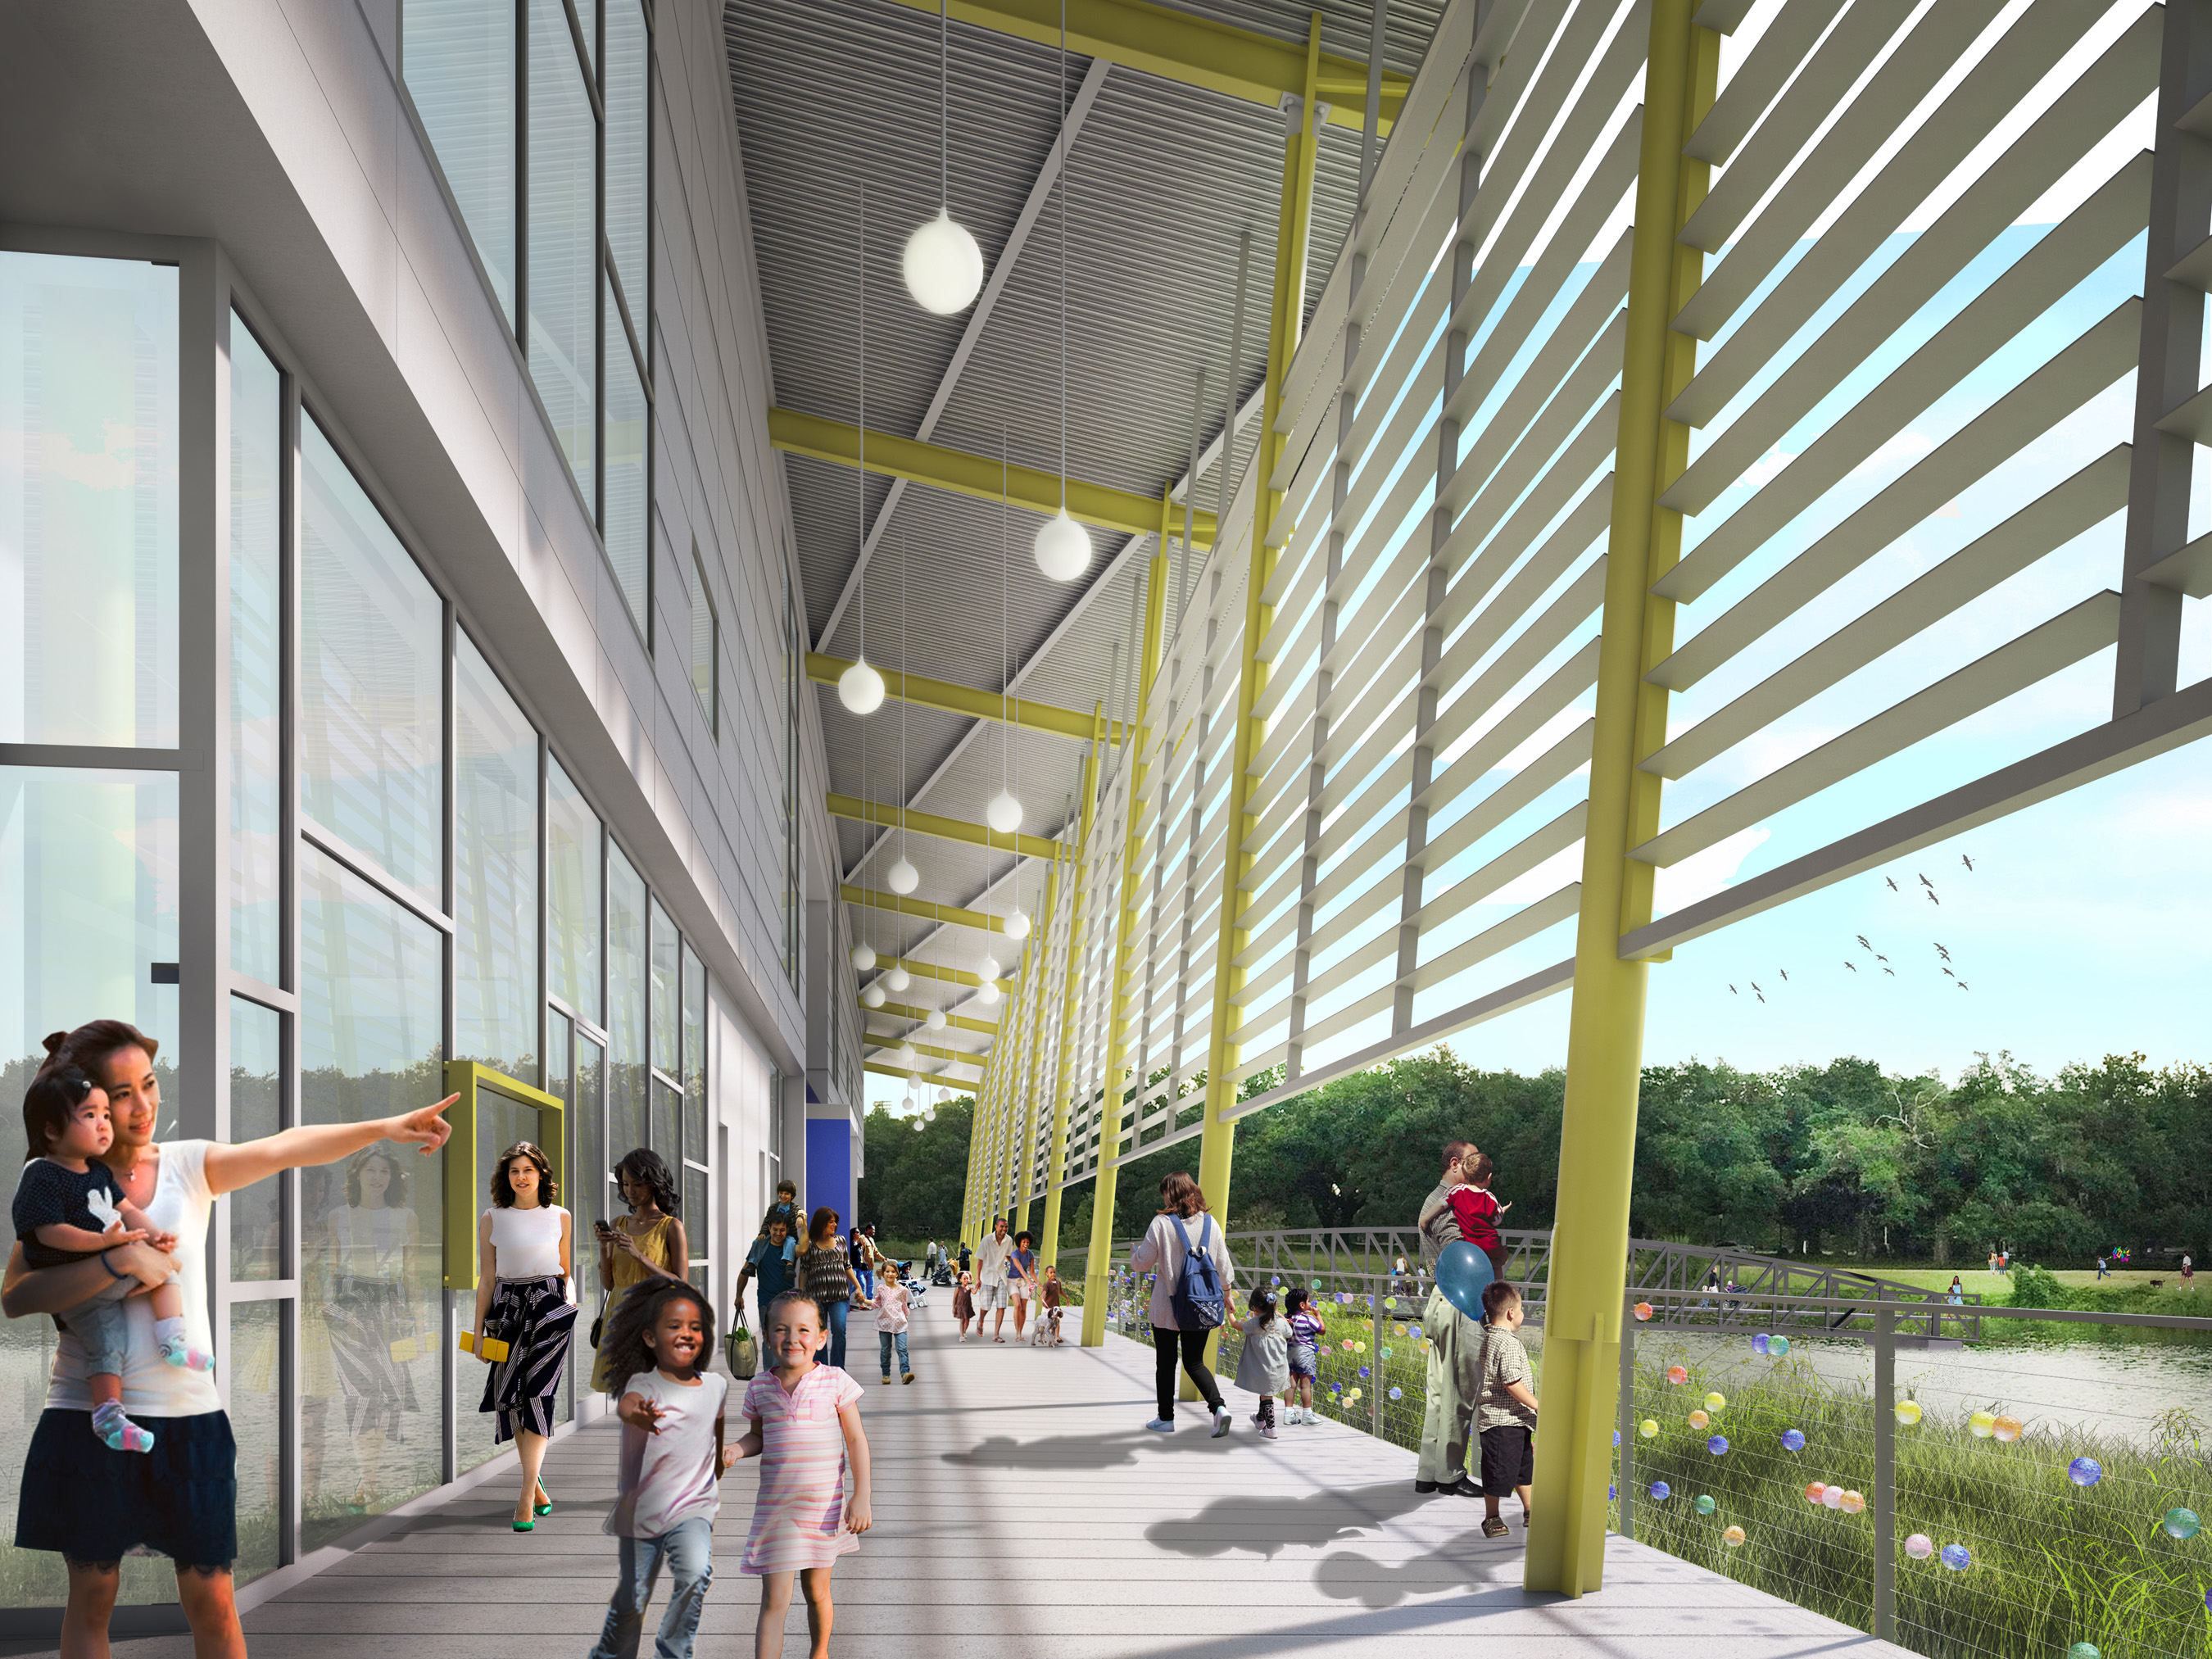 Louisiana Children's Museum announces the opening date of its new City Park campus